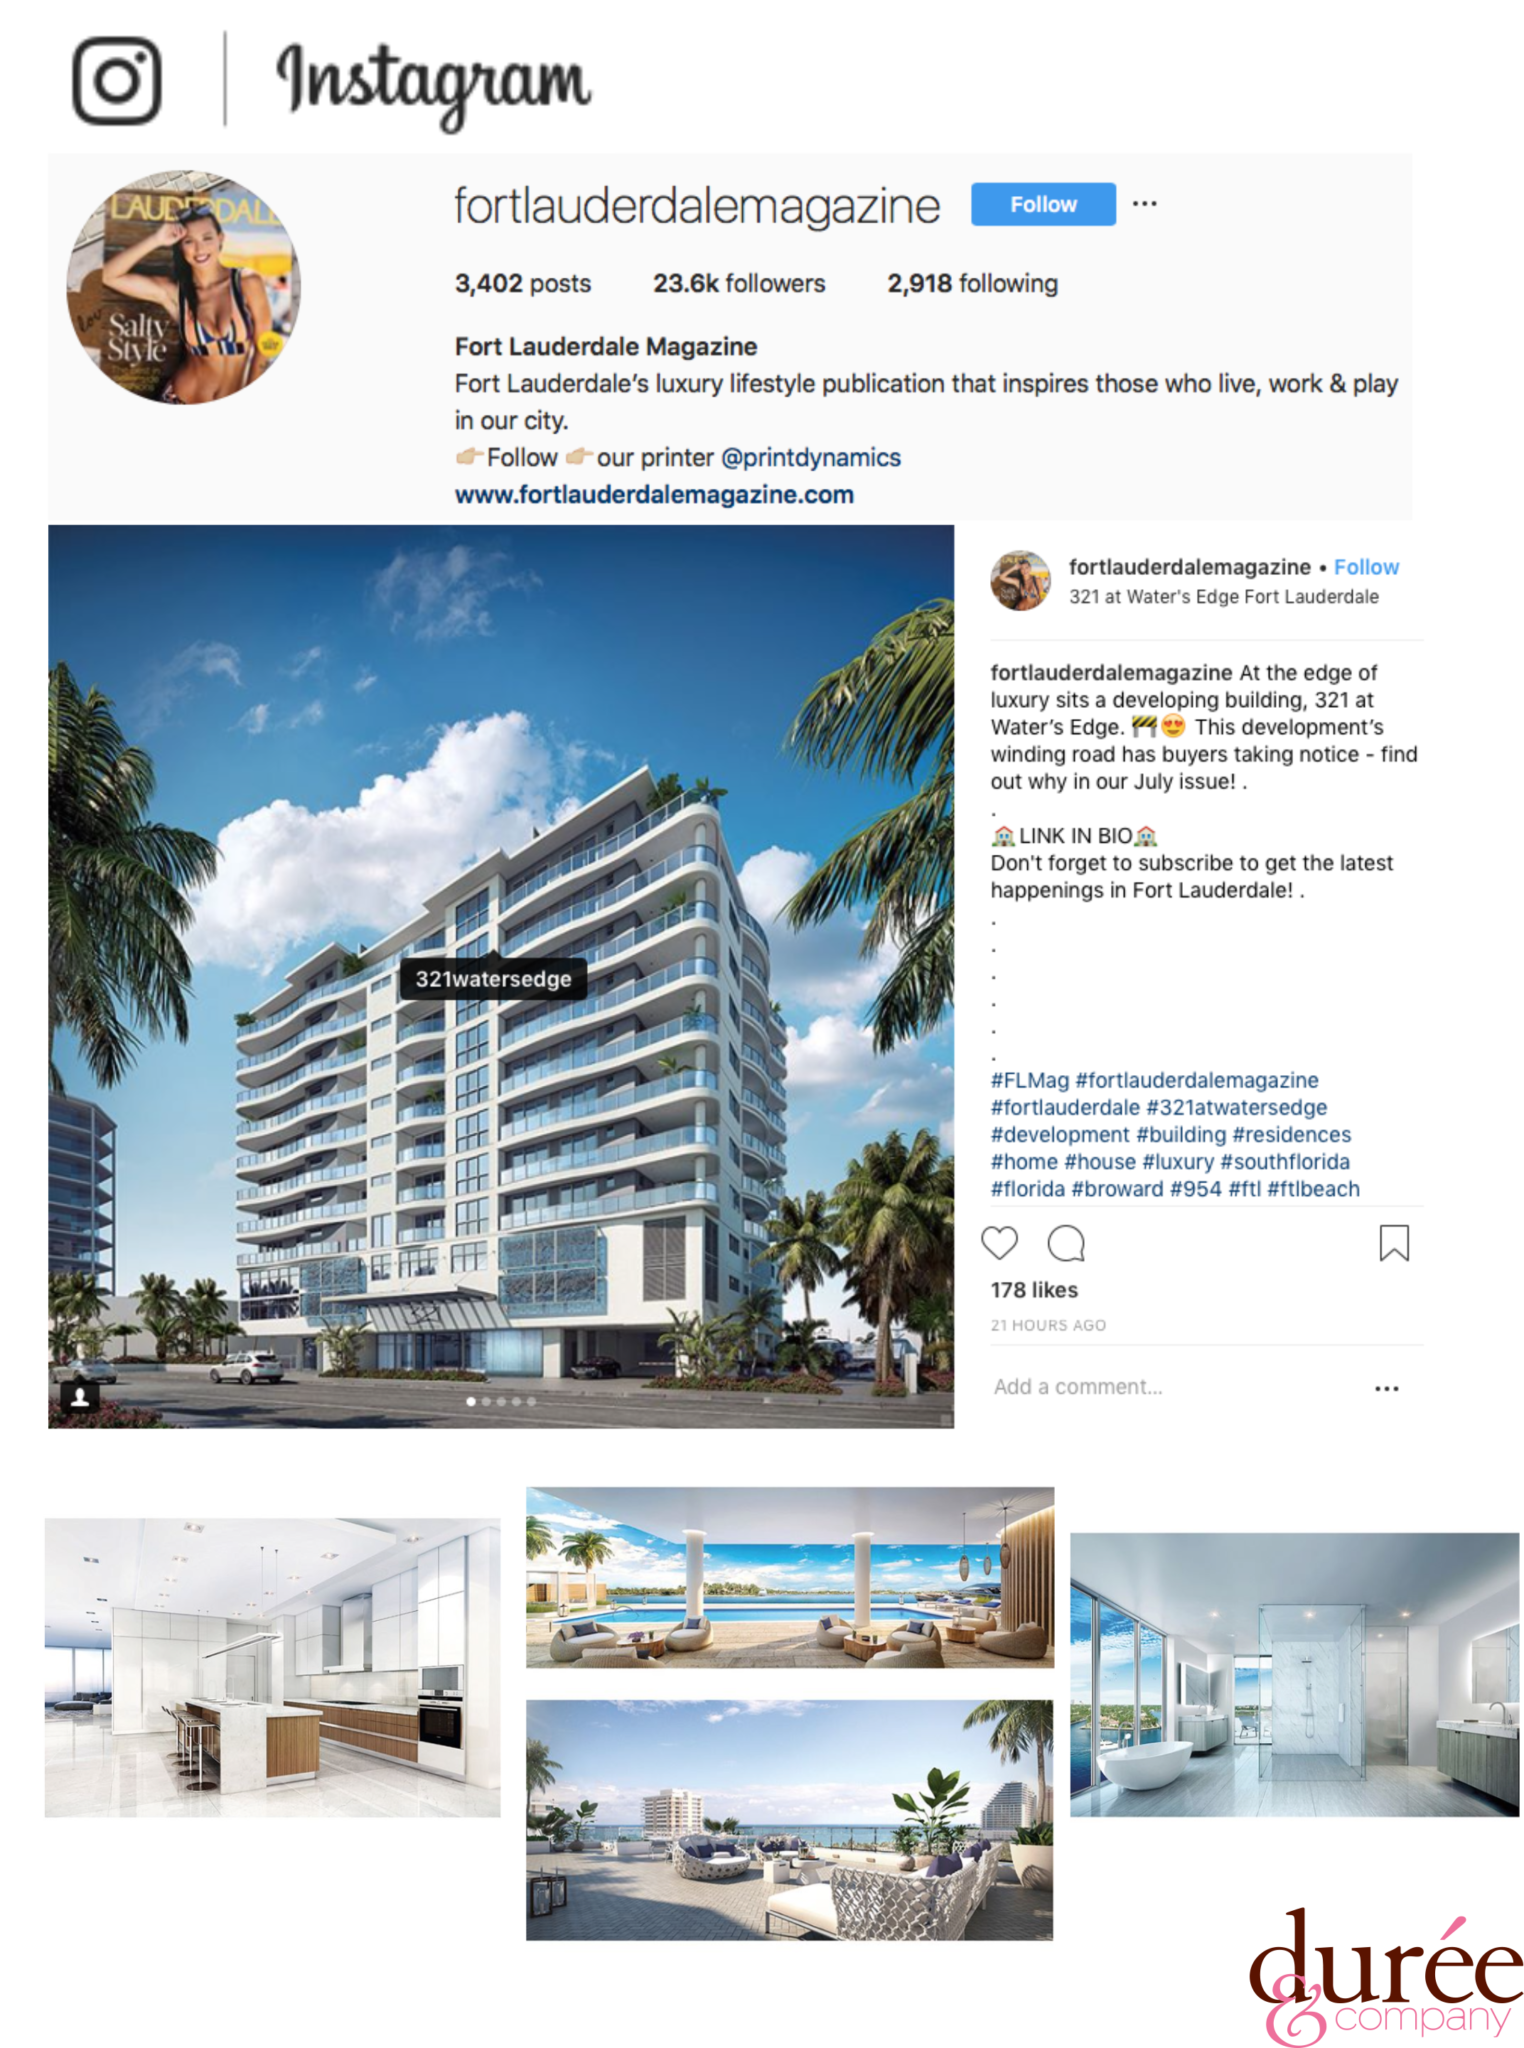 Image of SobelCo developer's 321 Water's Edge feature on FortLauderdaleMagazine Instagram